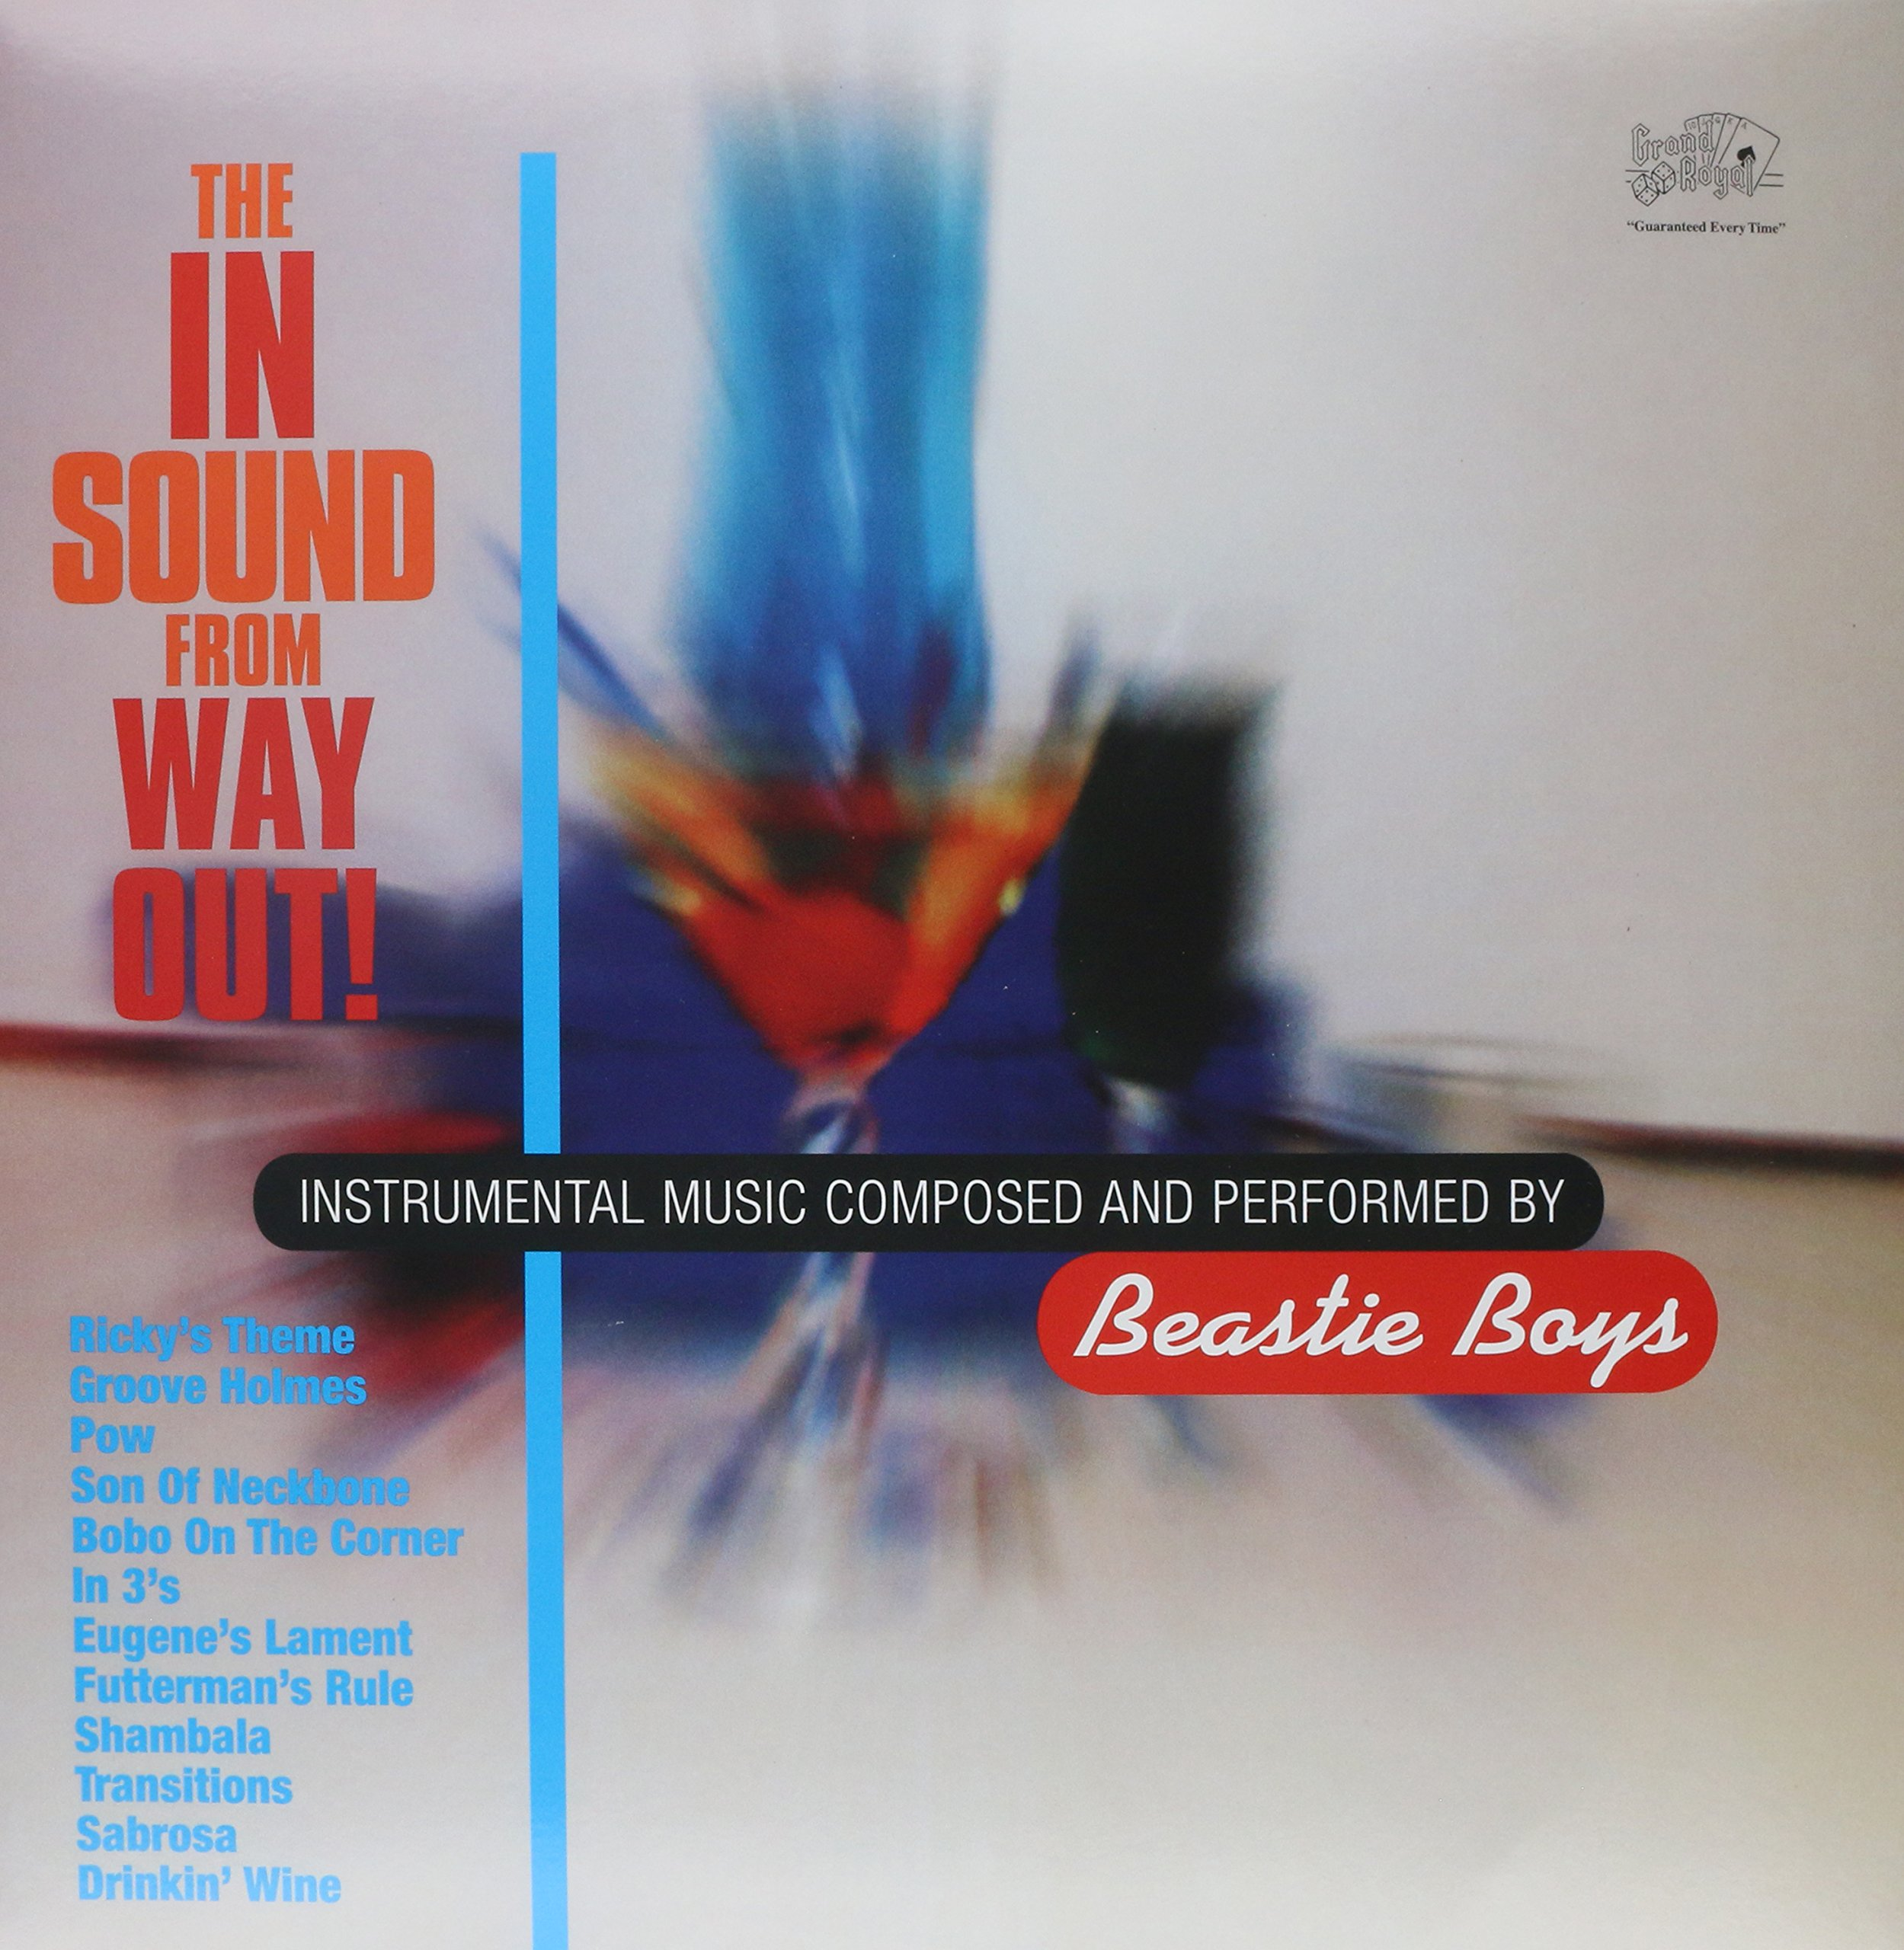 Beastie Boys - The In Sound From Way Out (LP Vinyl)